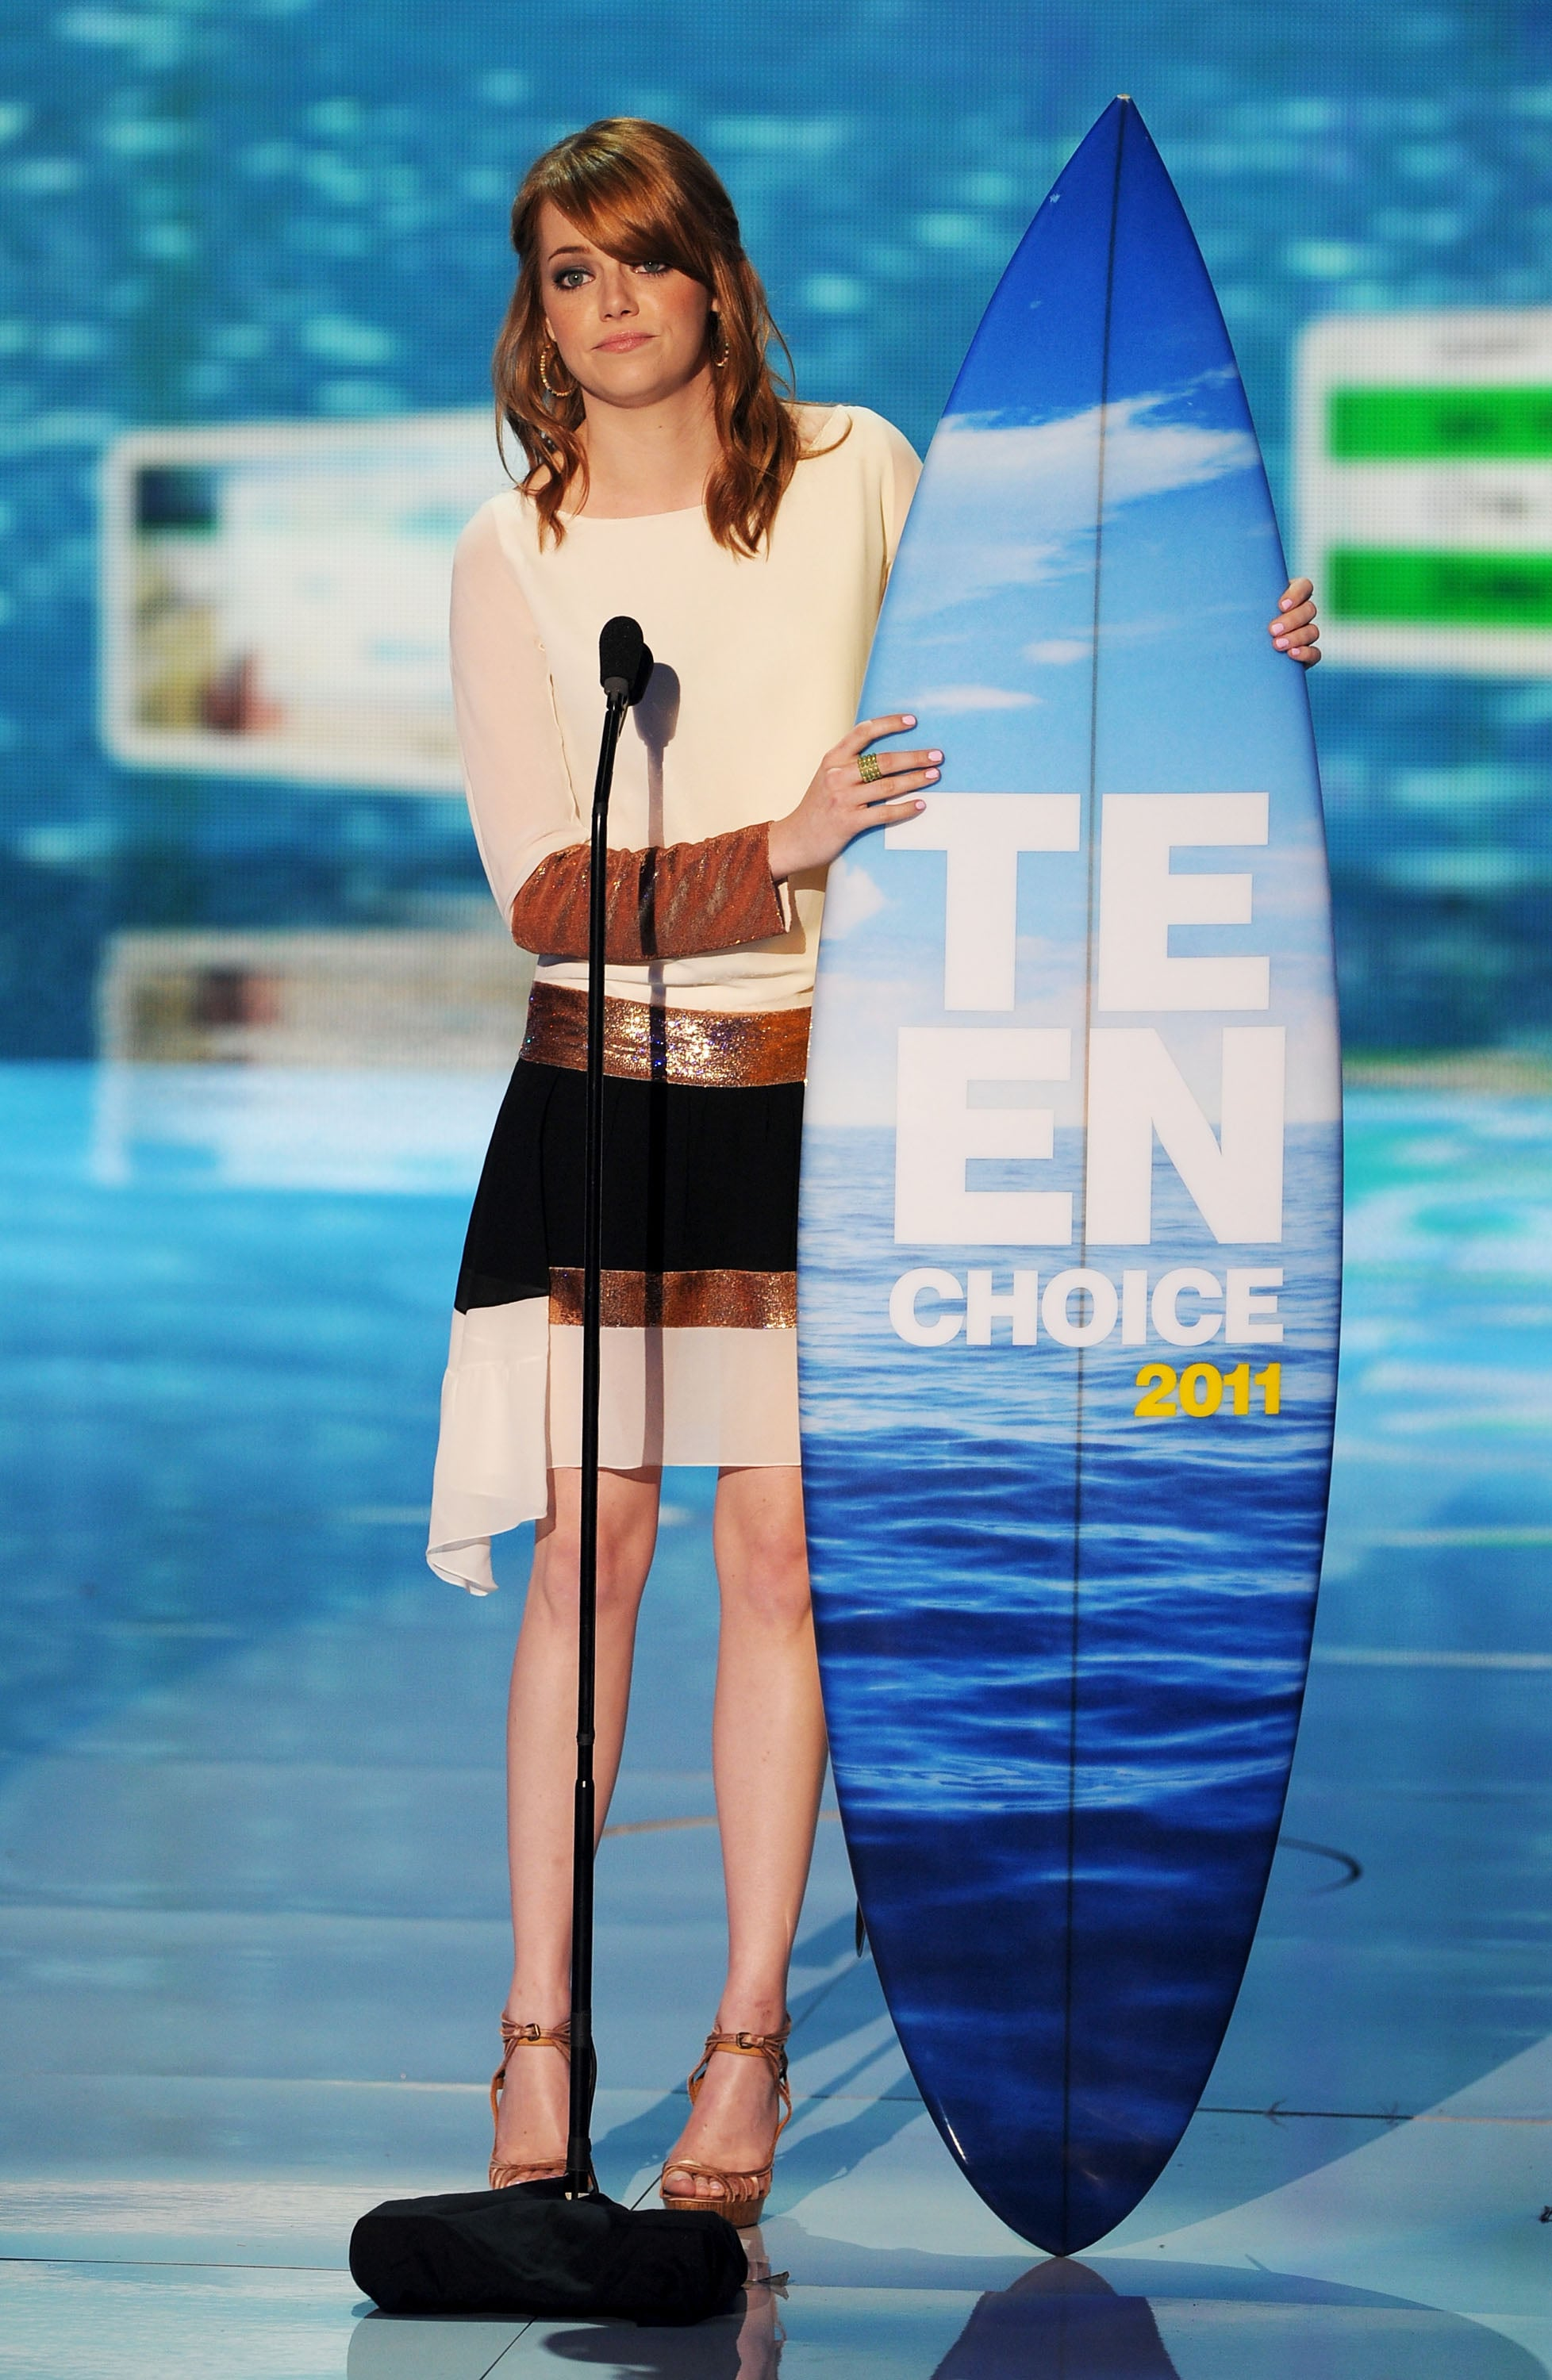 Pictures From 2011 Teen Choice Awards Show With Robert